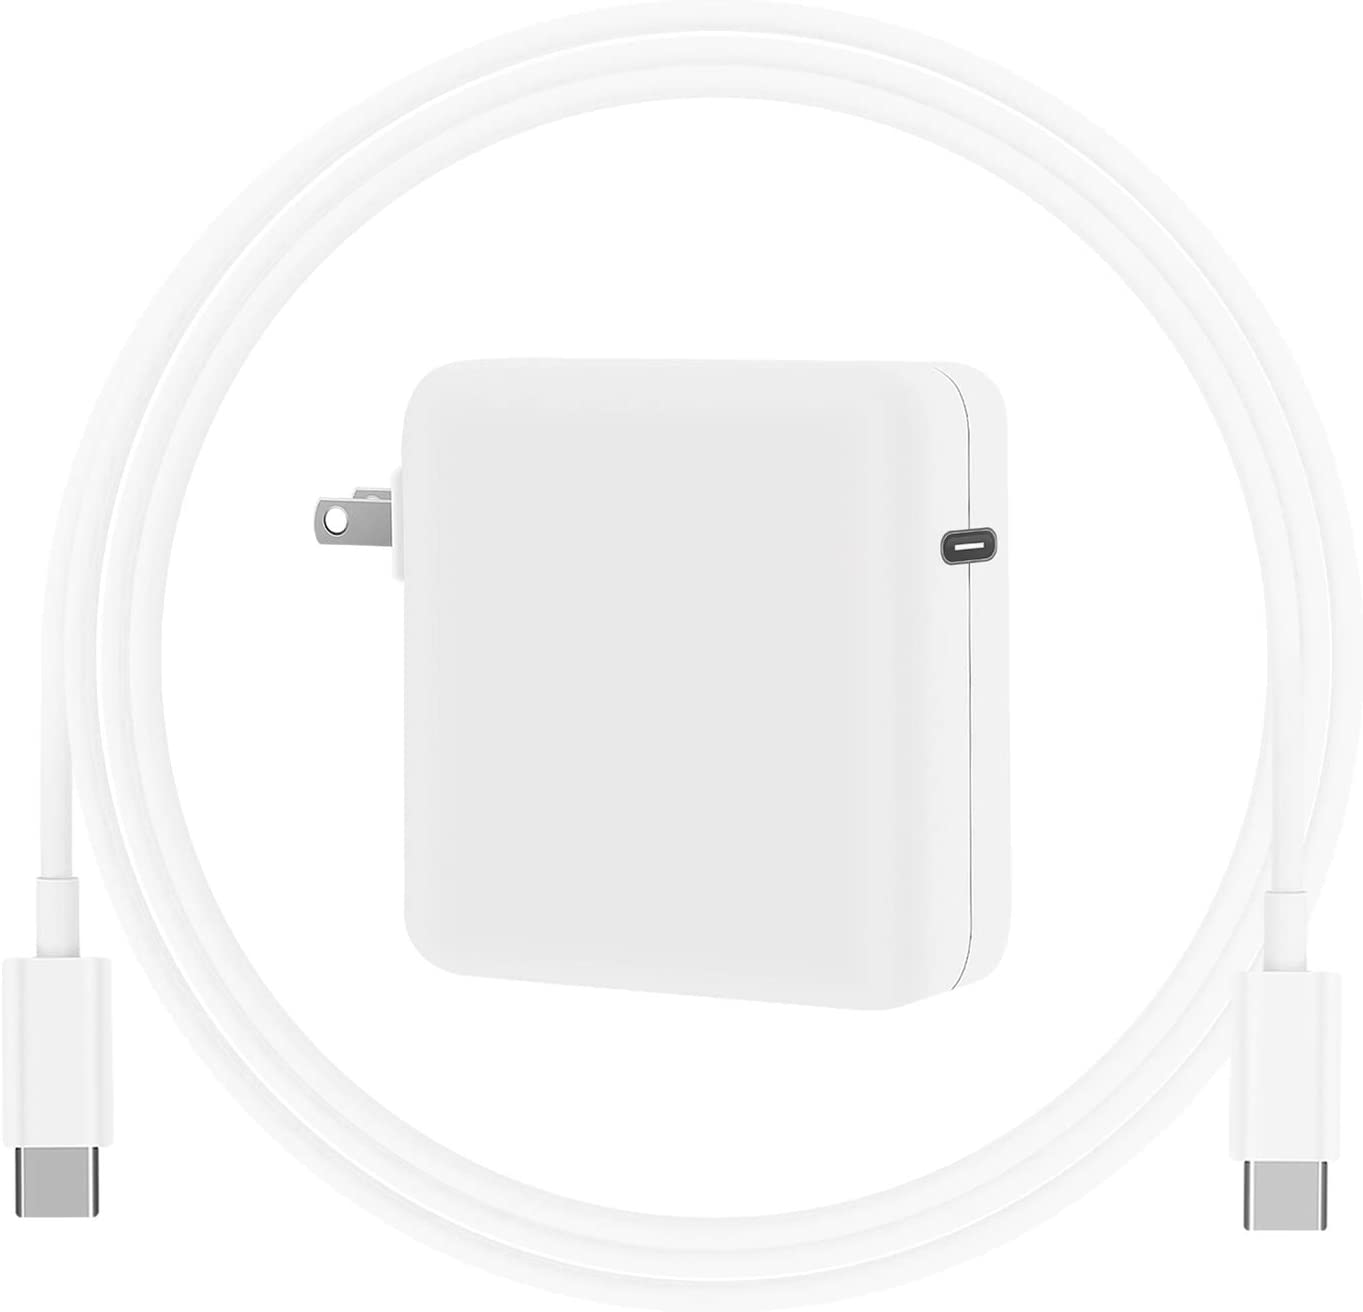 Replacement Mac Book Charger, 61W Laptop Charger USB C Power Adapter with Cable for MacBook Air 13/12 inch 2020, 2019, 2018, iPad Pro 12.9 11